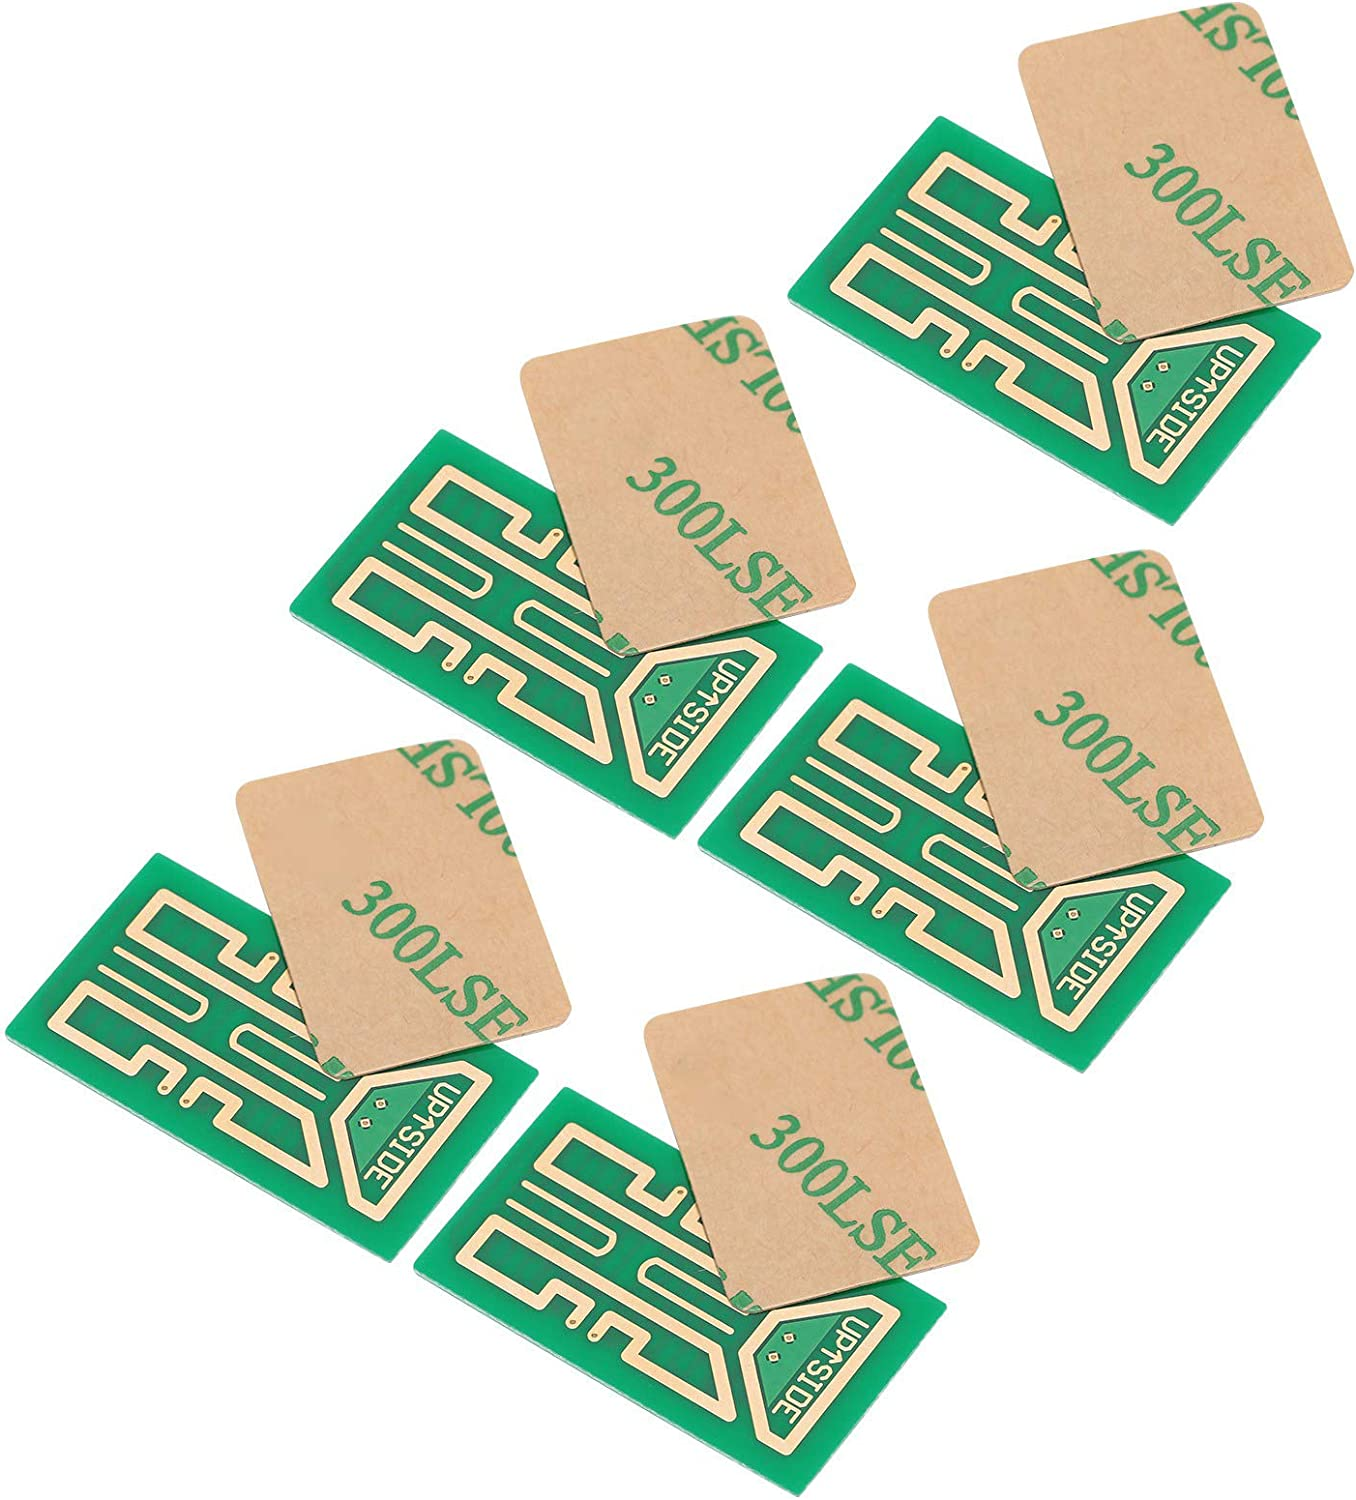 T angxi 5Pcs Outdoor Cell Phone Signal Enhancement Stickers, Outdoor Cell Phone Signal Enhancement Stickers Mobile Phone Signal Improver Boosters